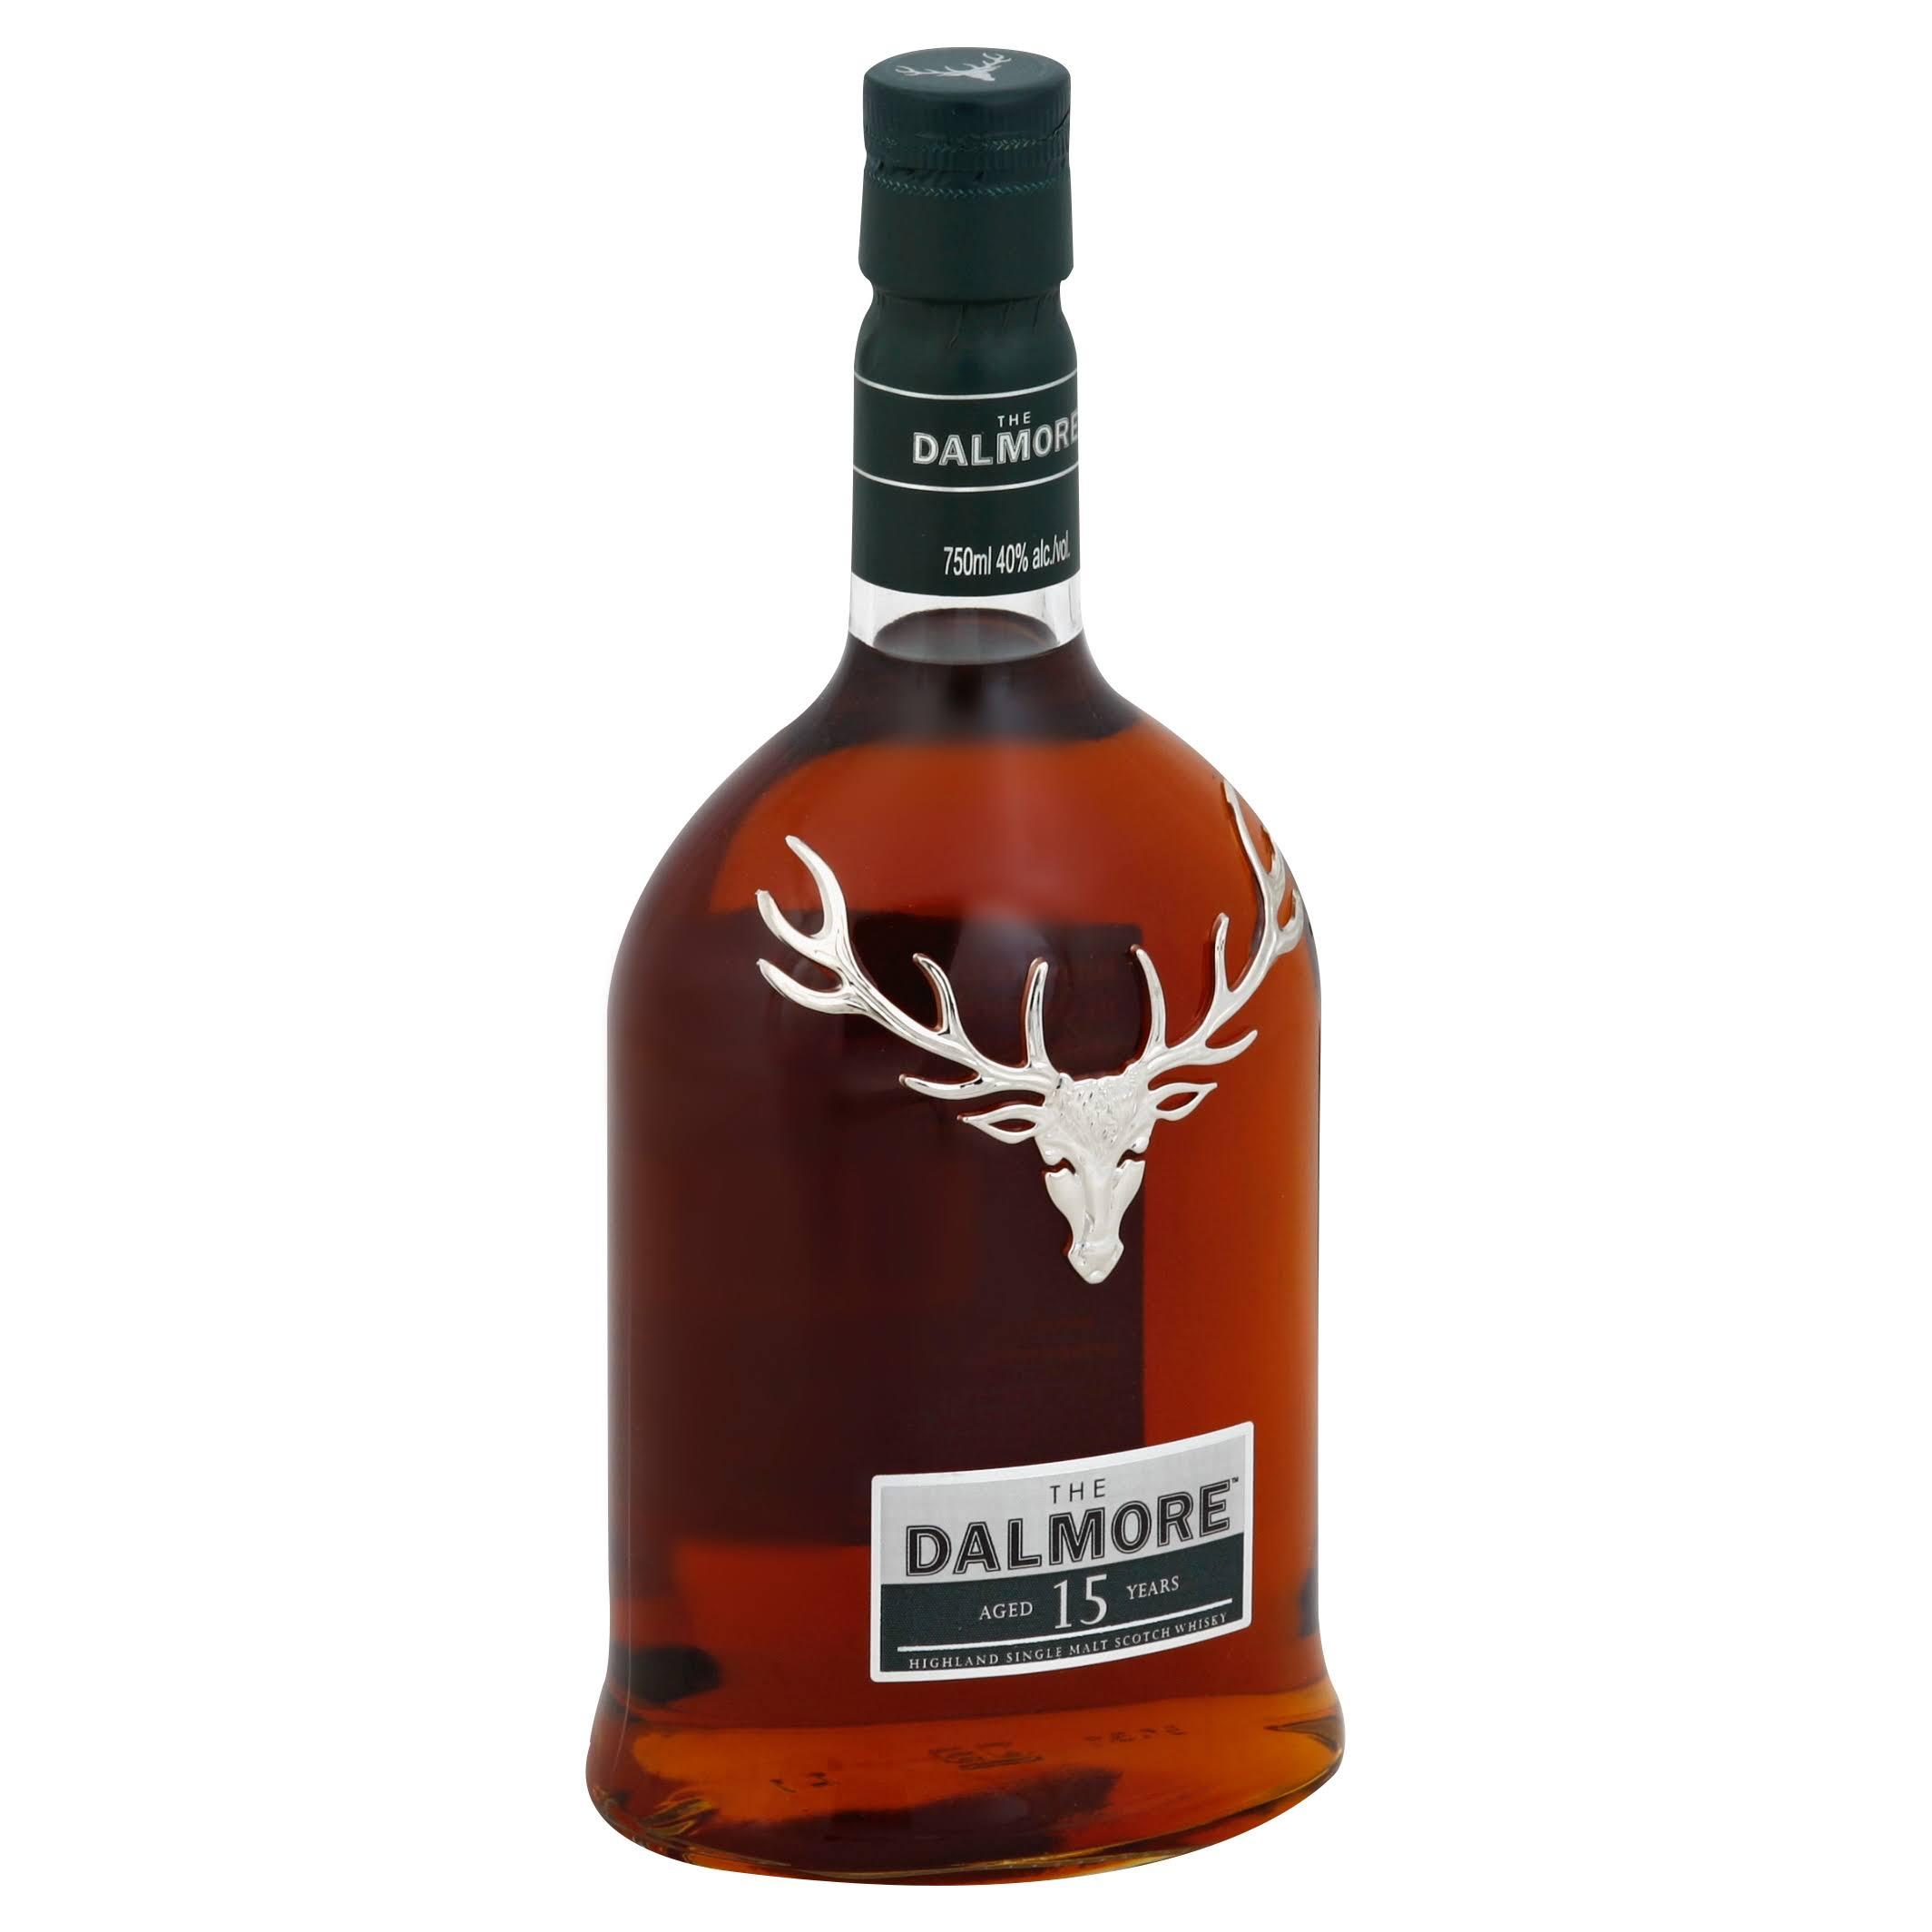 Dalmore Single Malt Scotch